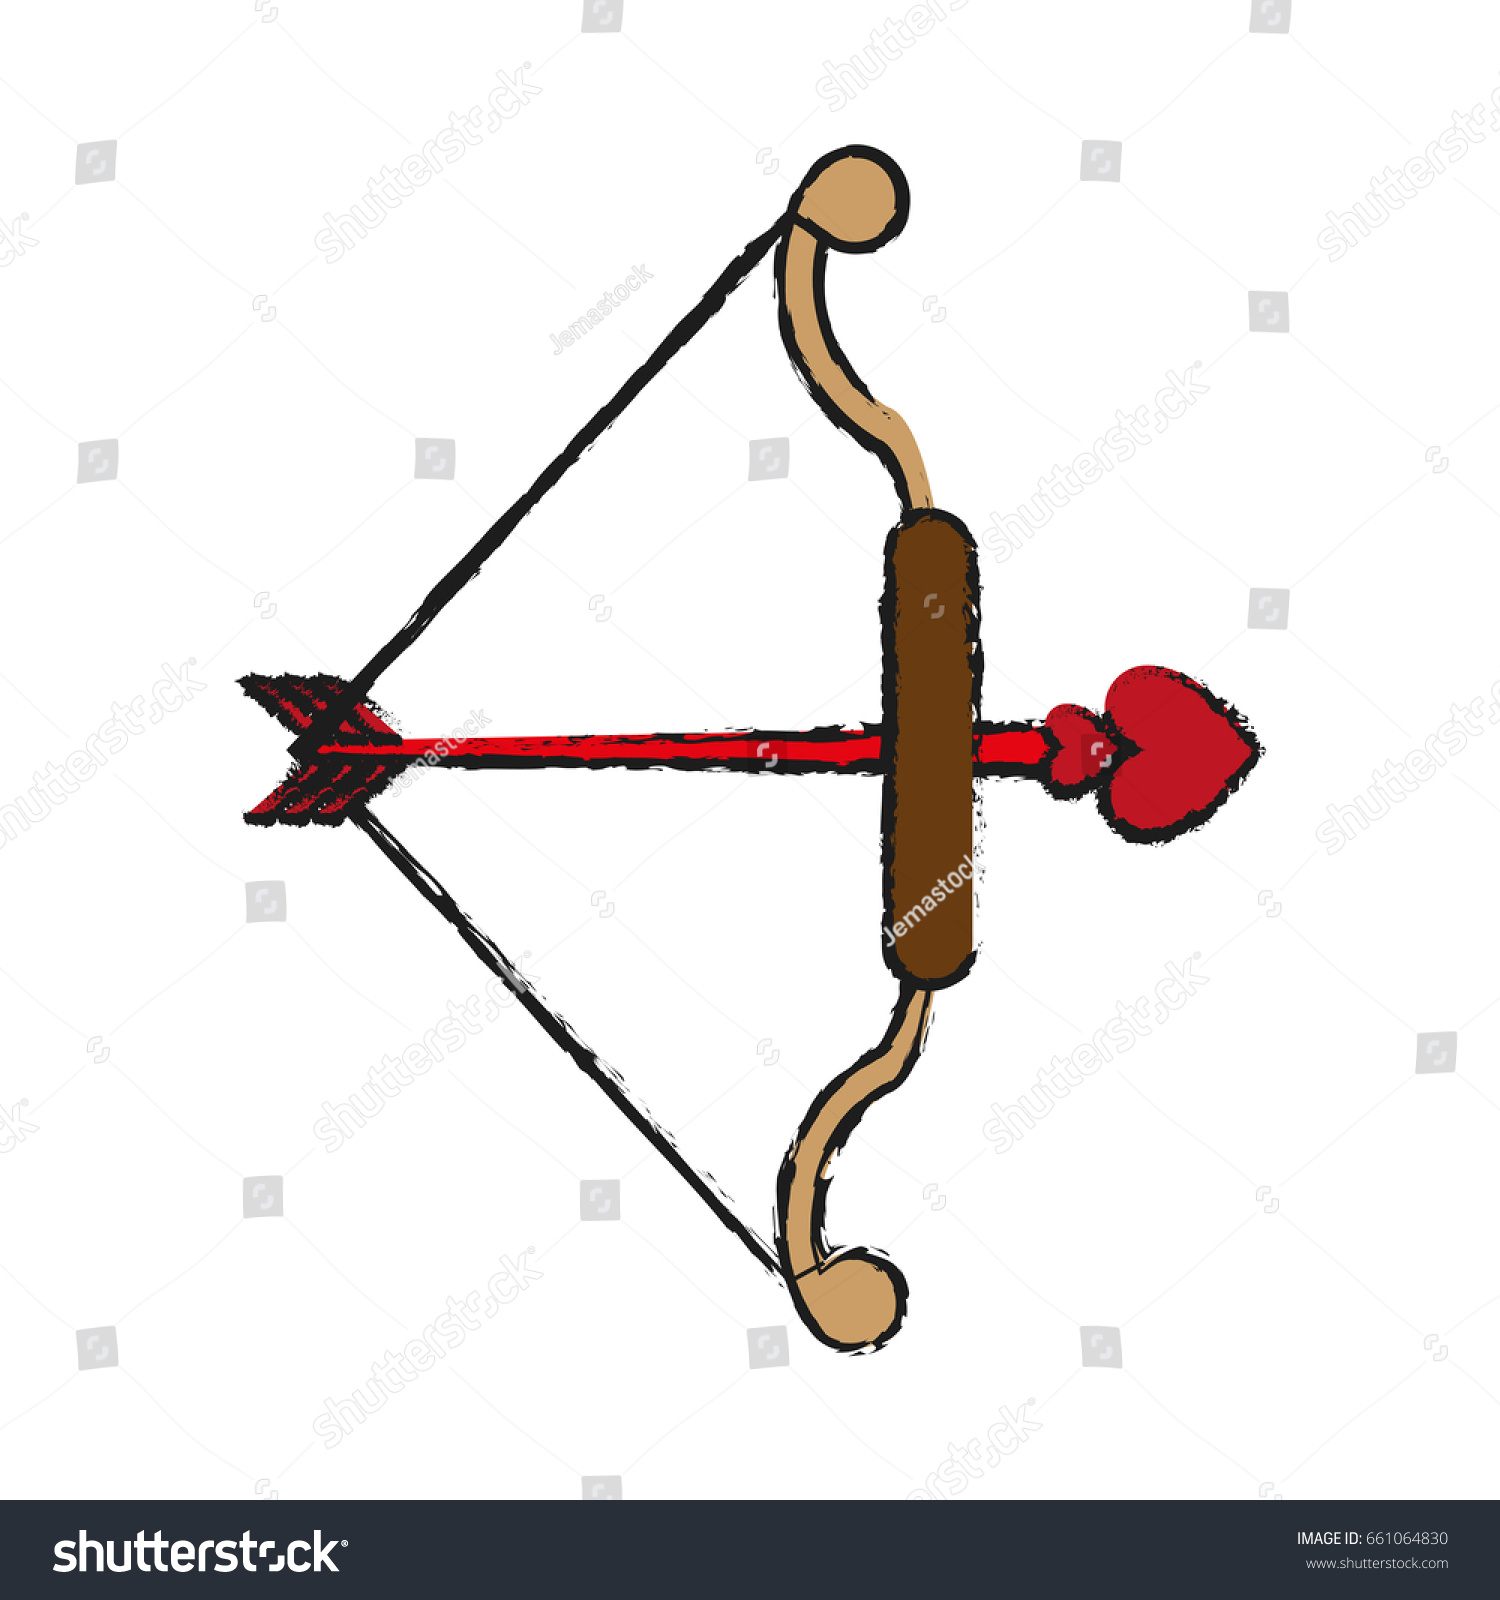 Bow Arrow Ove Valentines Day Related Stock Vector Royalty Free